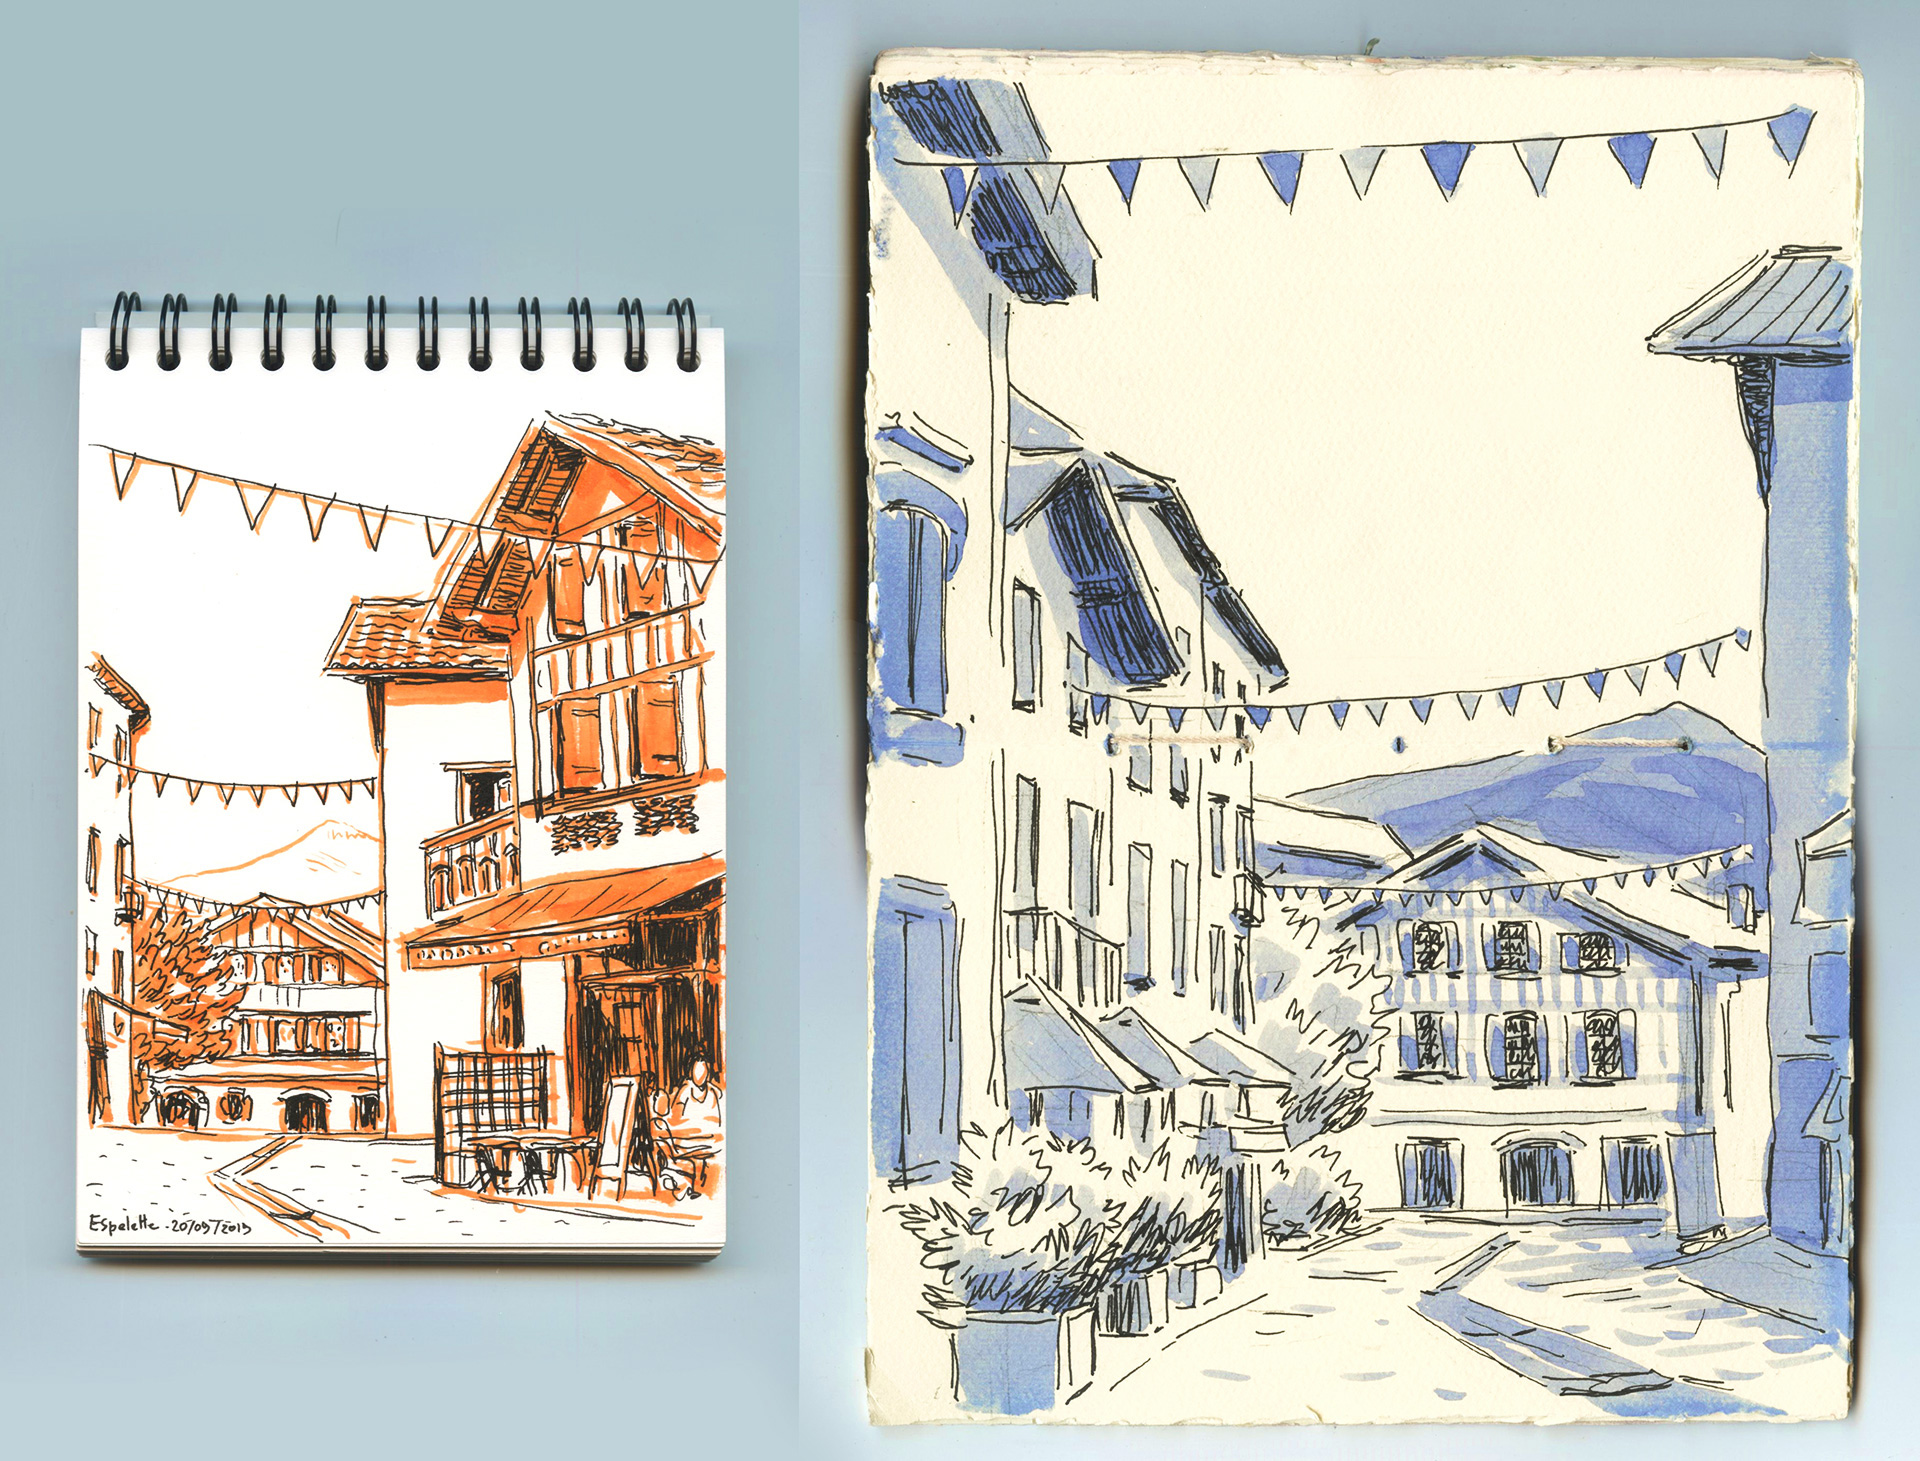 sketches of Espelette streets